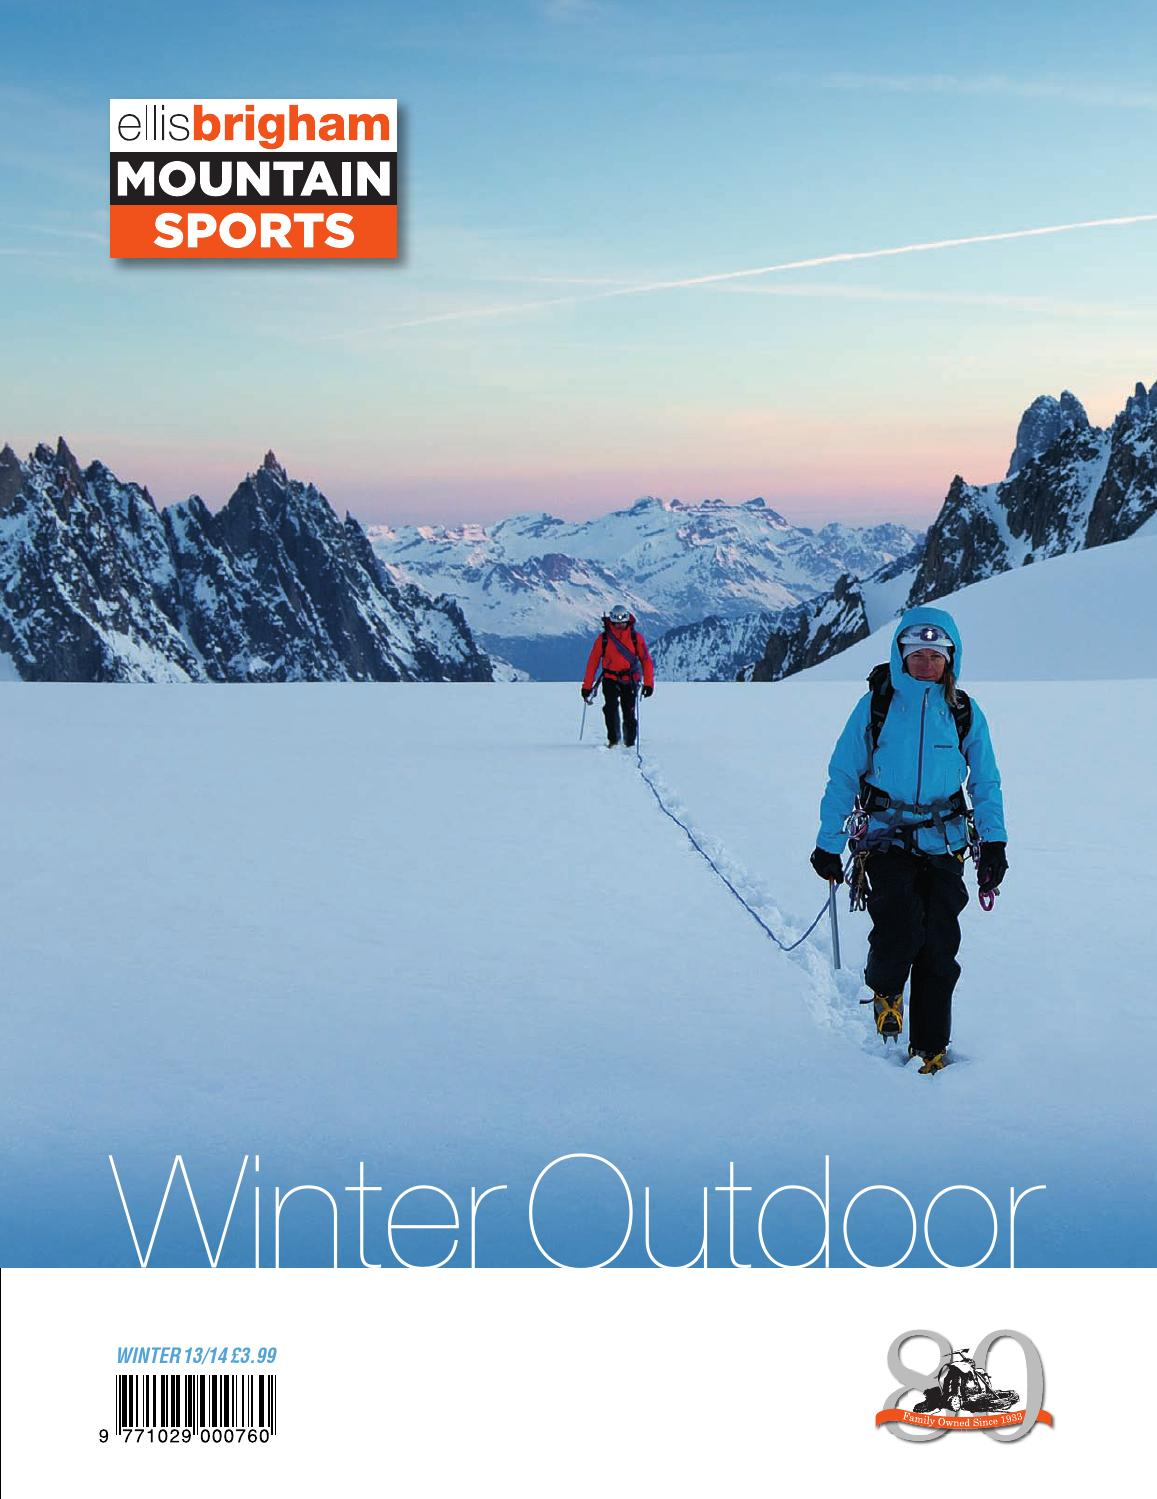 1491544c36d4 Winter Outdoor Catalogue 2013 14 by Ellis Brigham Mountain Sports - issuu